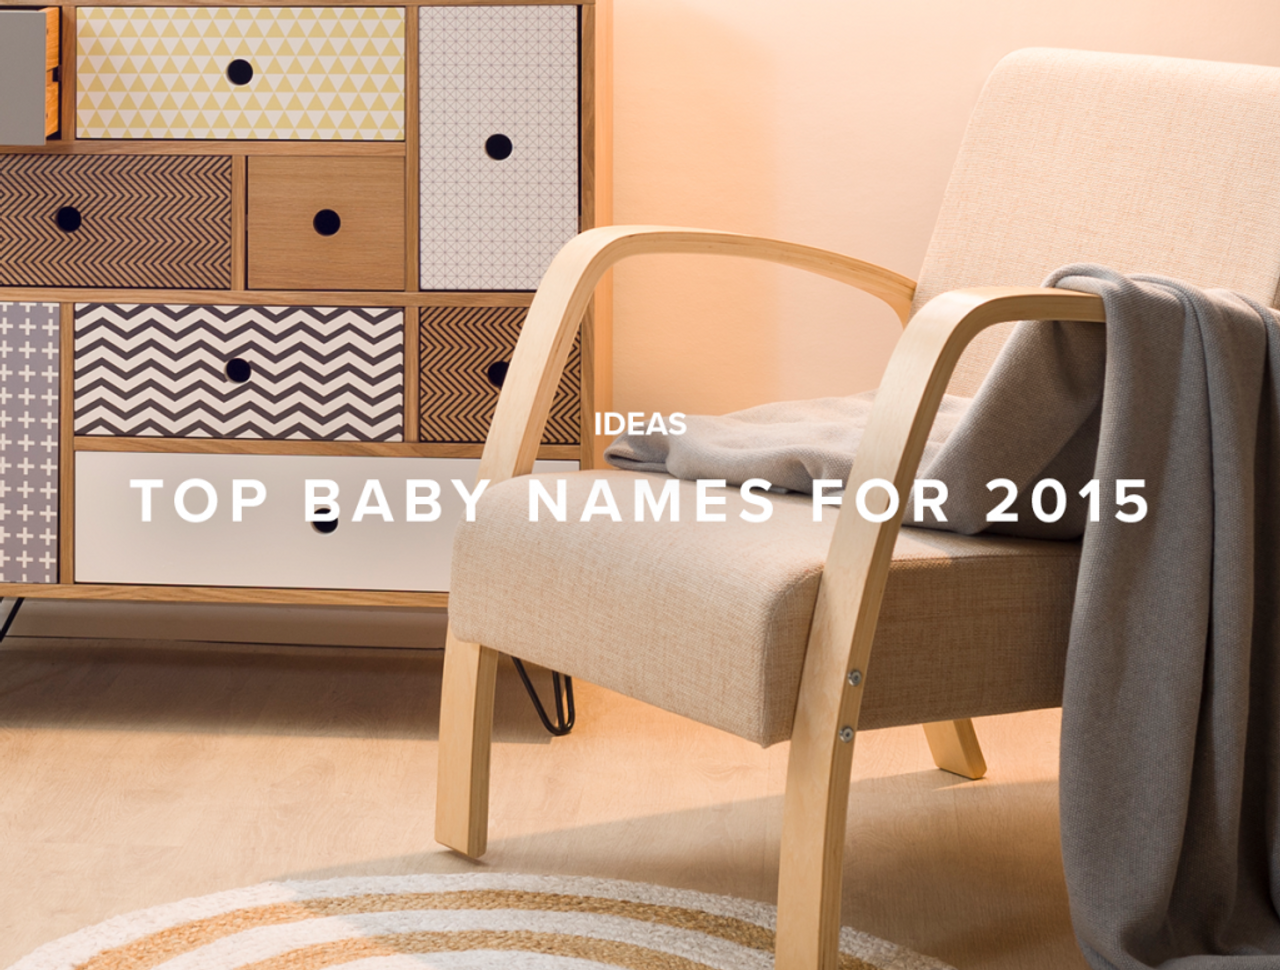 Top Baby Names for 2015